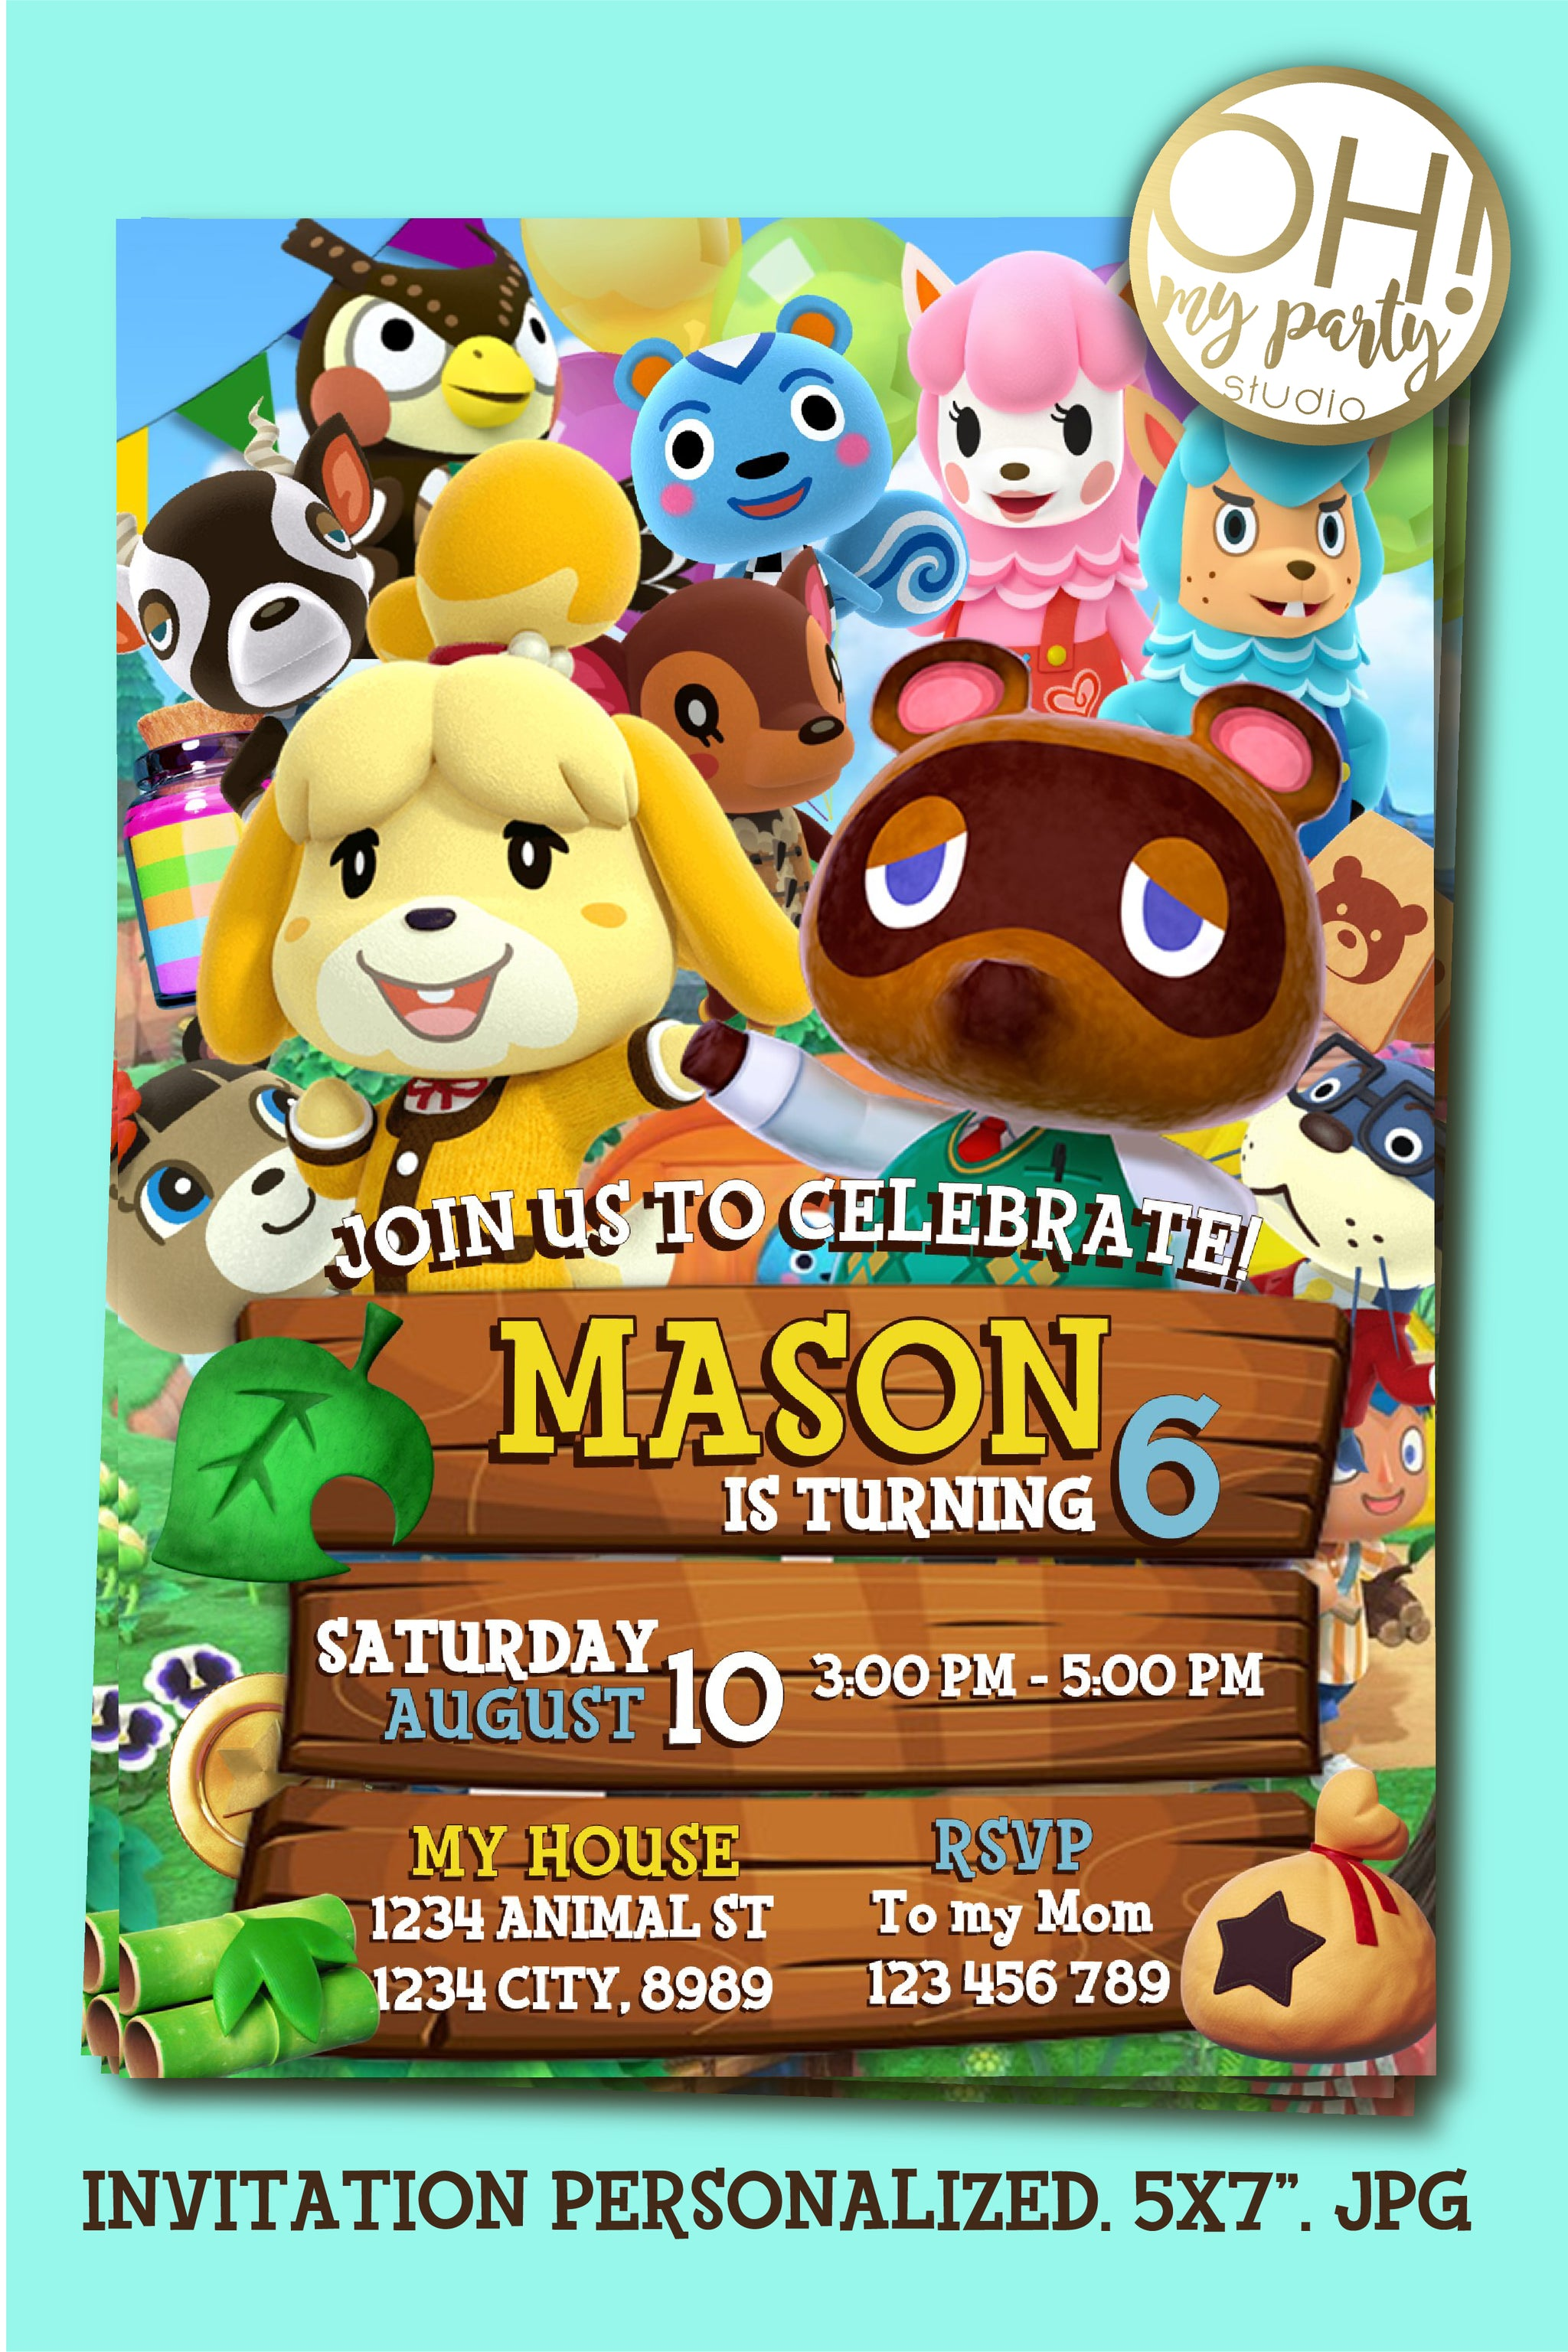 ANIMAL CROSSING BIRTHDAY, ANIMAL CROSSING PARTY, ANIMAL CROSSING BIRTHDAY PARTY, ANIMAL CROSSING INVITATION, ANIMAL CROSSING INVITATIONS, ANIMAL CROSSING DIGITAL INVITATION, ANIMAL CROSSING INVITE, ANIMAL CROSSING PARTY INVITATION, ANIMAL CROSSING BIRTHDAY INVITATION, ANIMAL CROSSING PARTY IDEAS, ANIMAL CROSSING BIRTHDAY, ANIMAL CROSSING BIRTHDAY INVITATION, ANIMAL CROSSING PARTY SUPPLIES